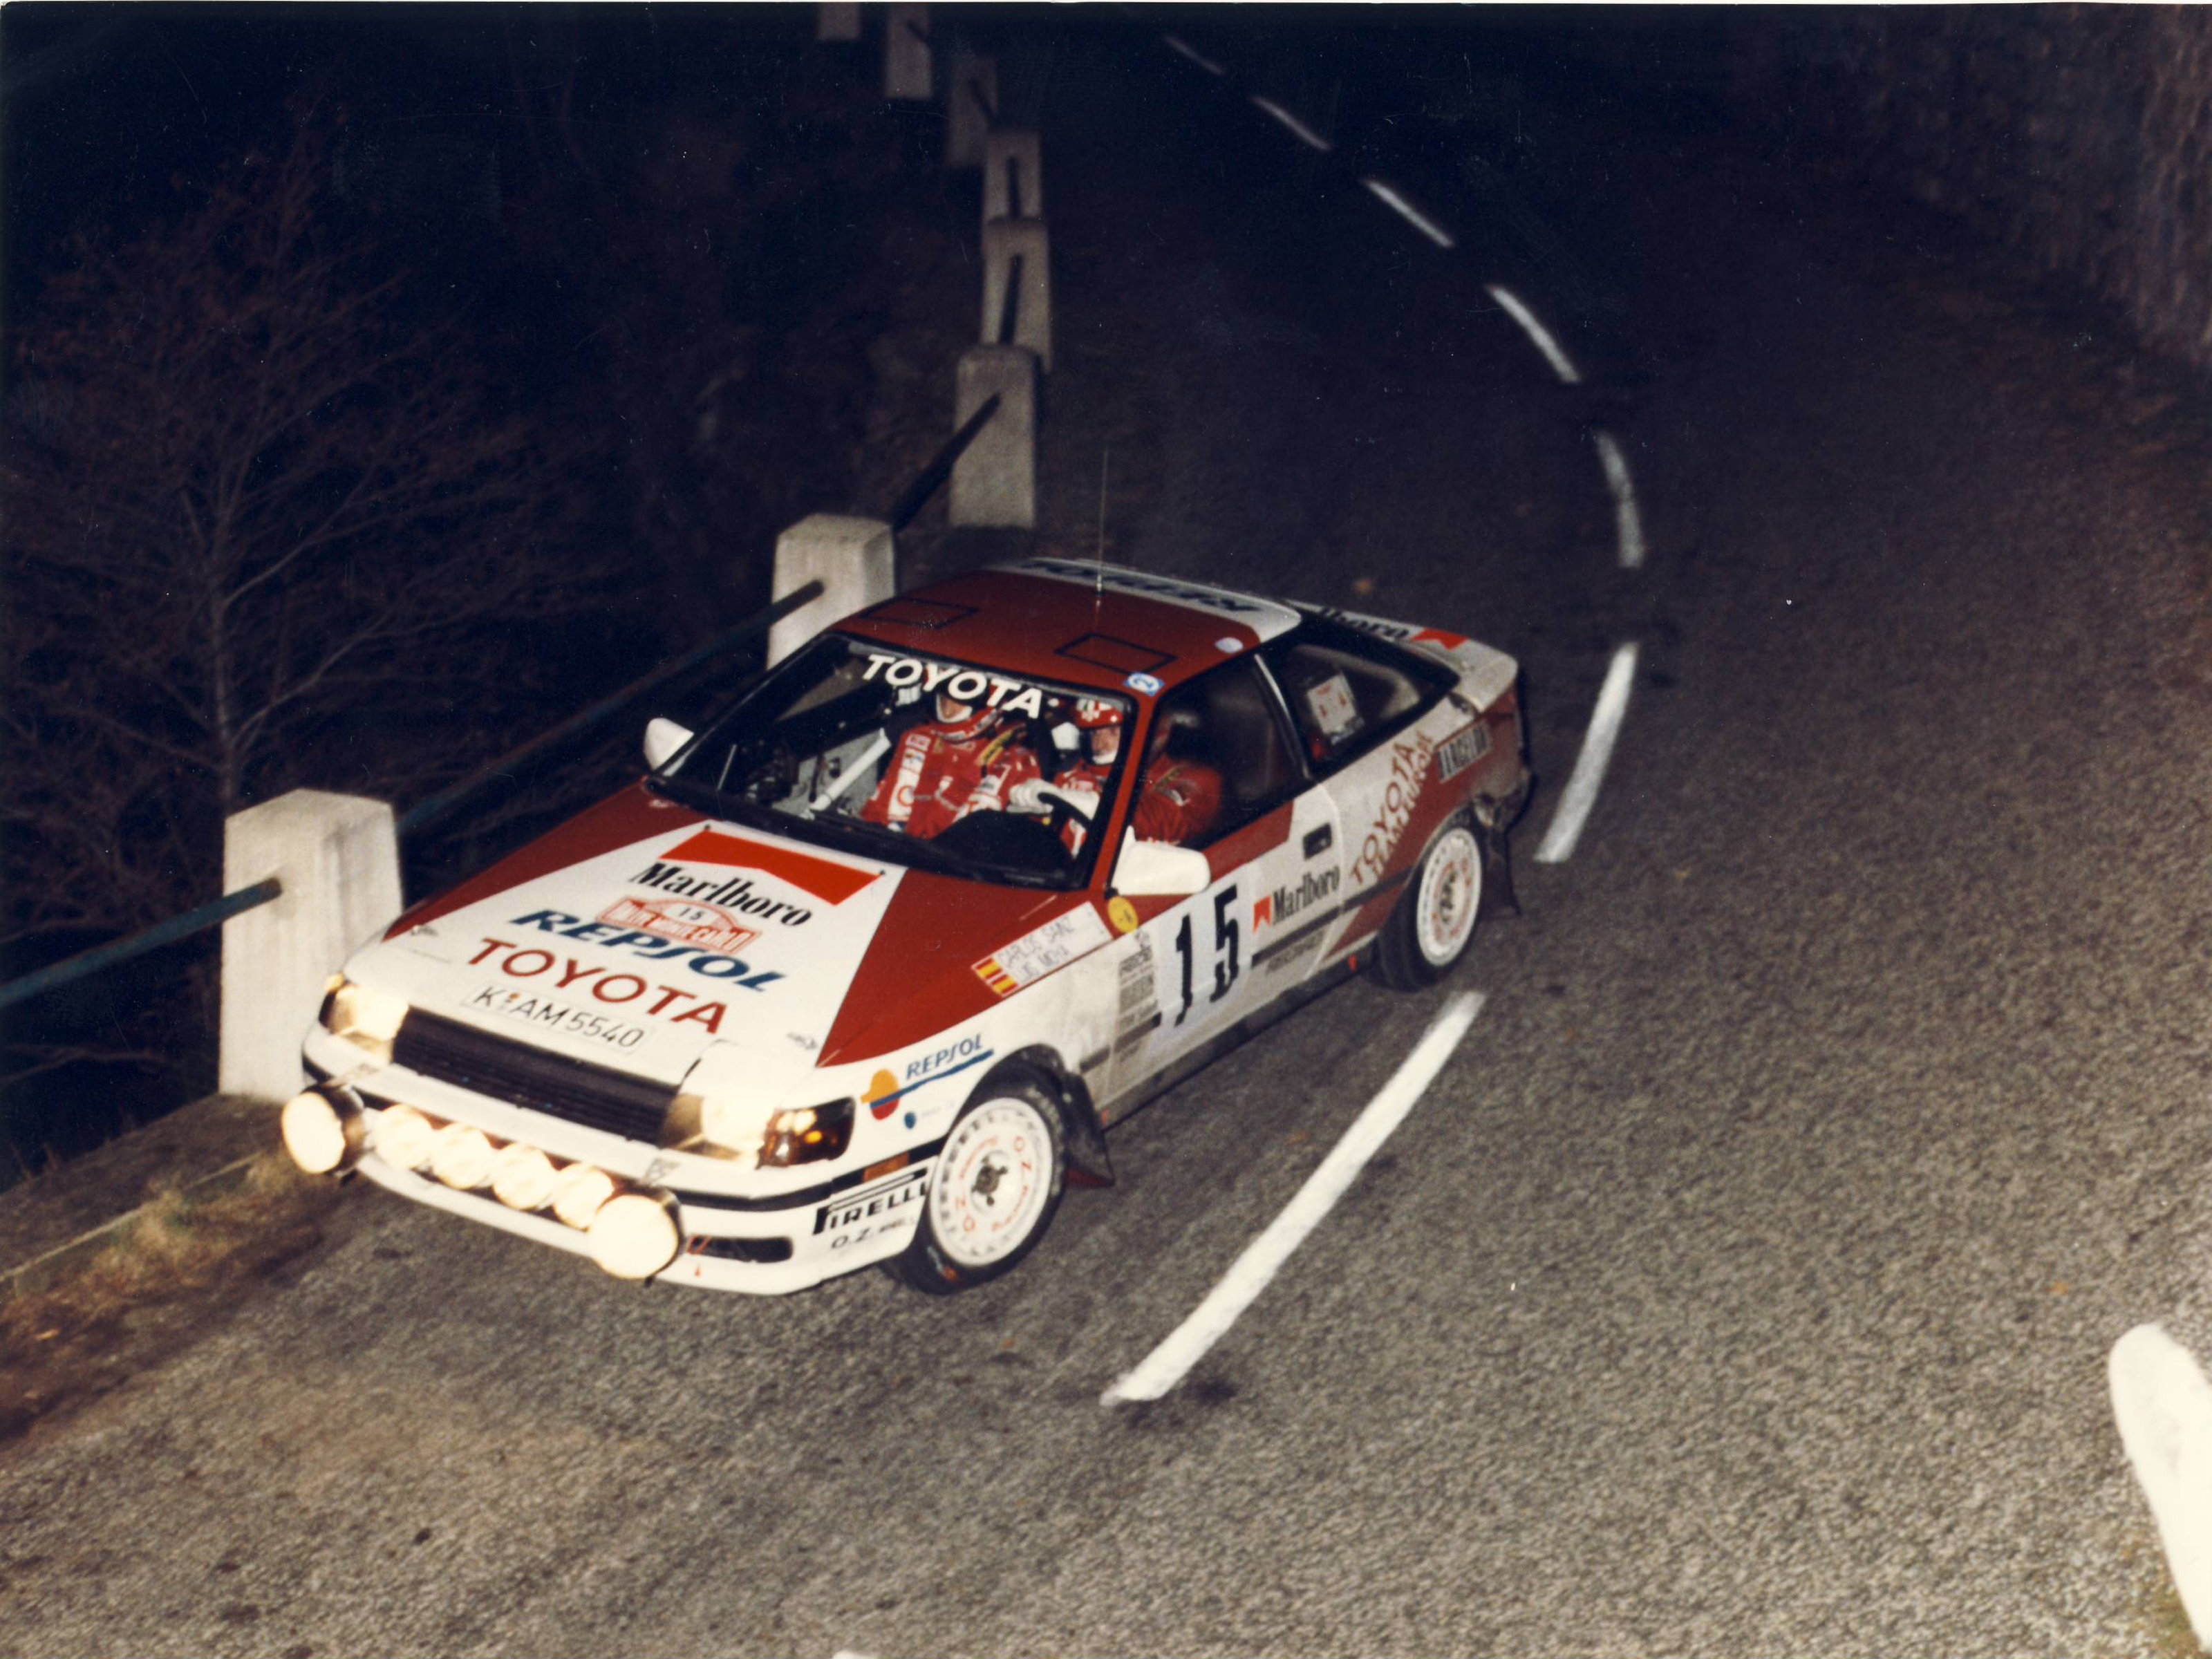 1989 – Repsol's debut in the World Rally Championship